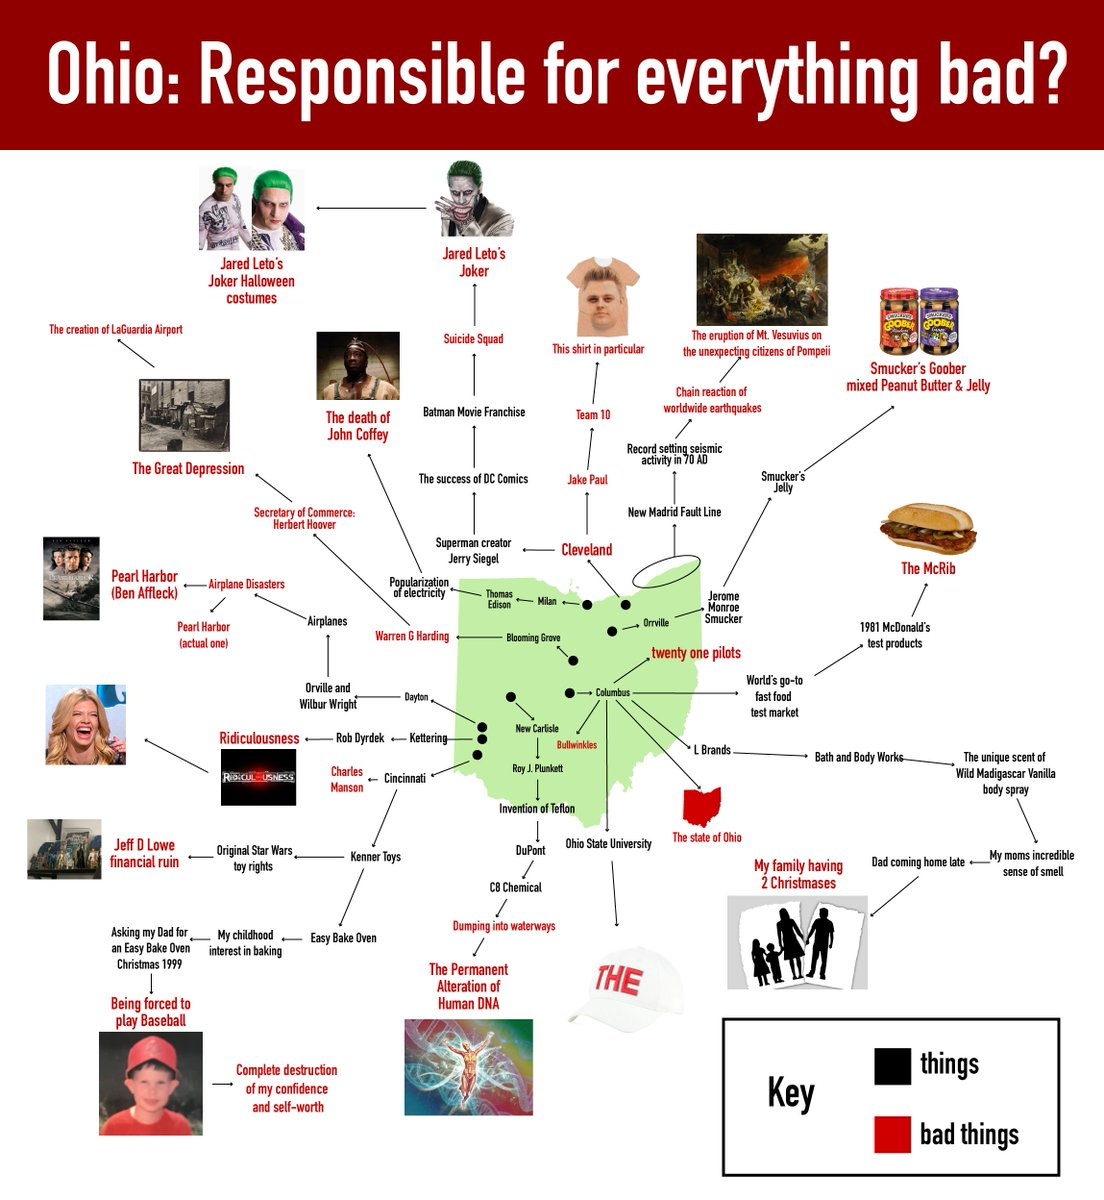 Is Ohio responsible for everything bad that's ever happened?  https://t.co/Oa9MOHDNA0 https://t.co/mB5Rw6SMpo